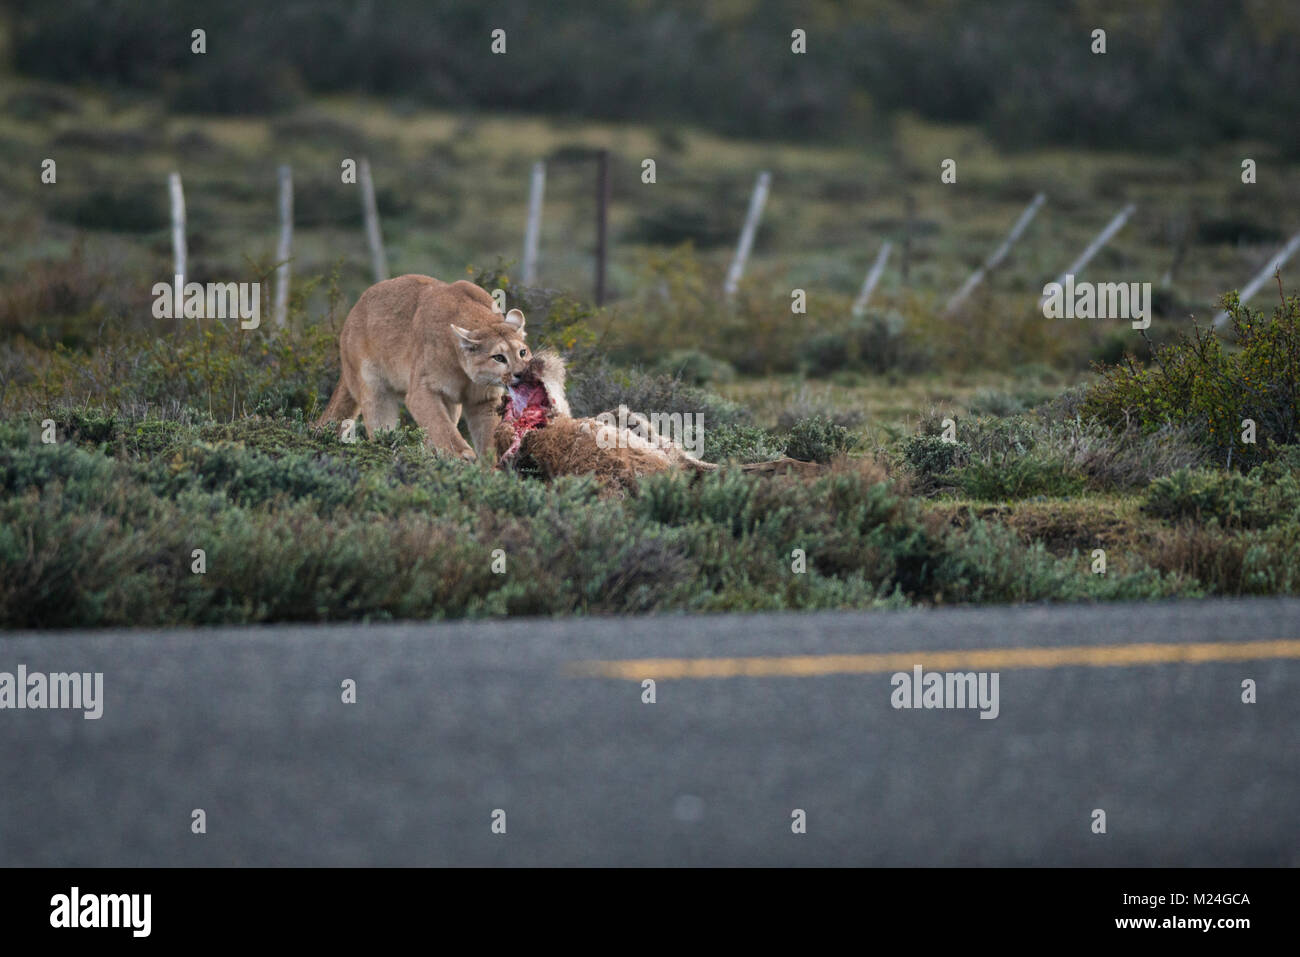 A Puma dragging a Guanaco it killed right at roadside near Torres del Paine National Park, Chile - Stock Image